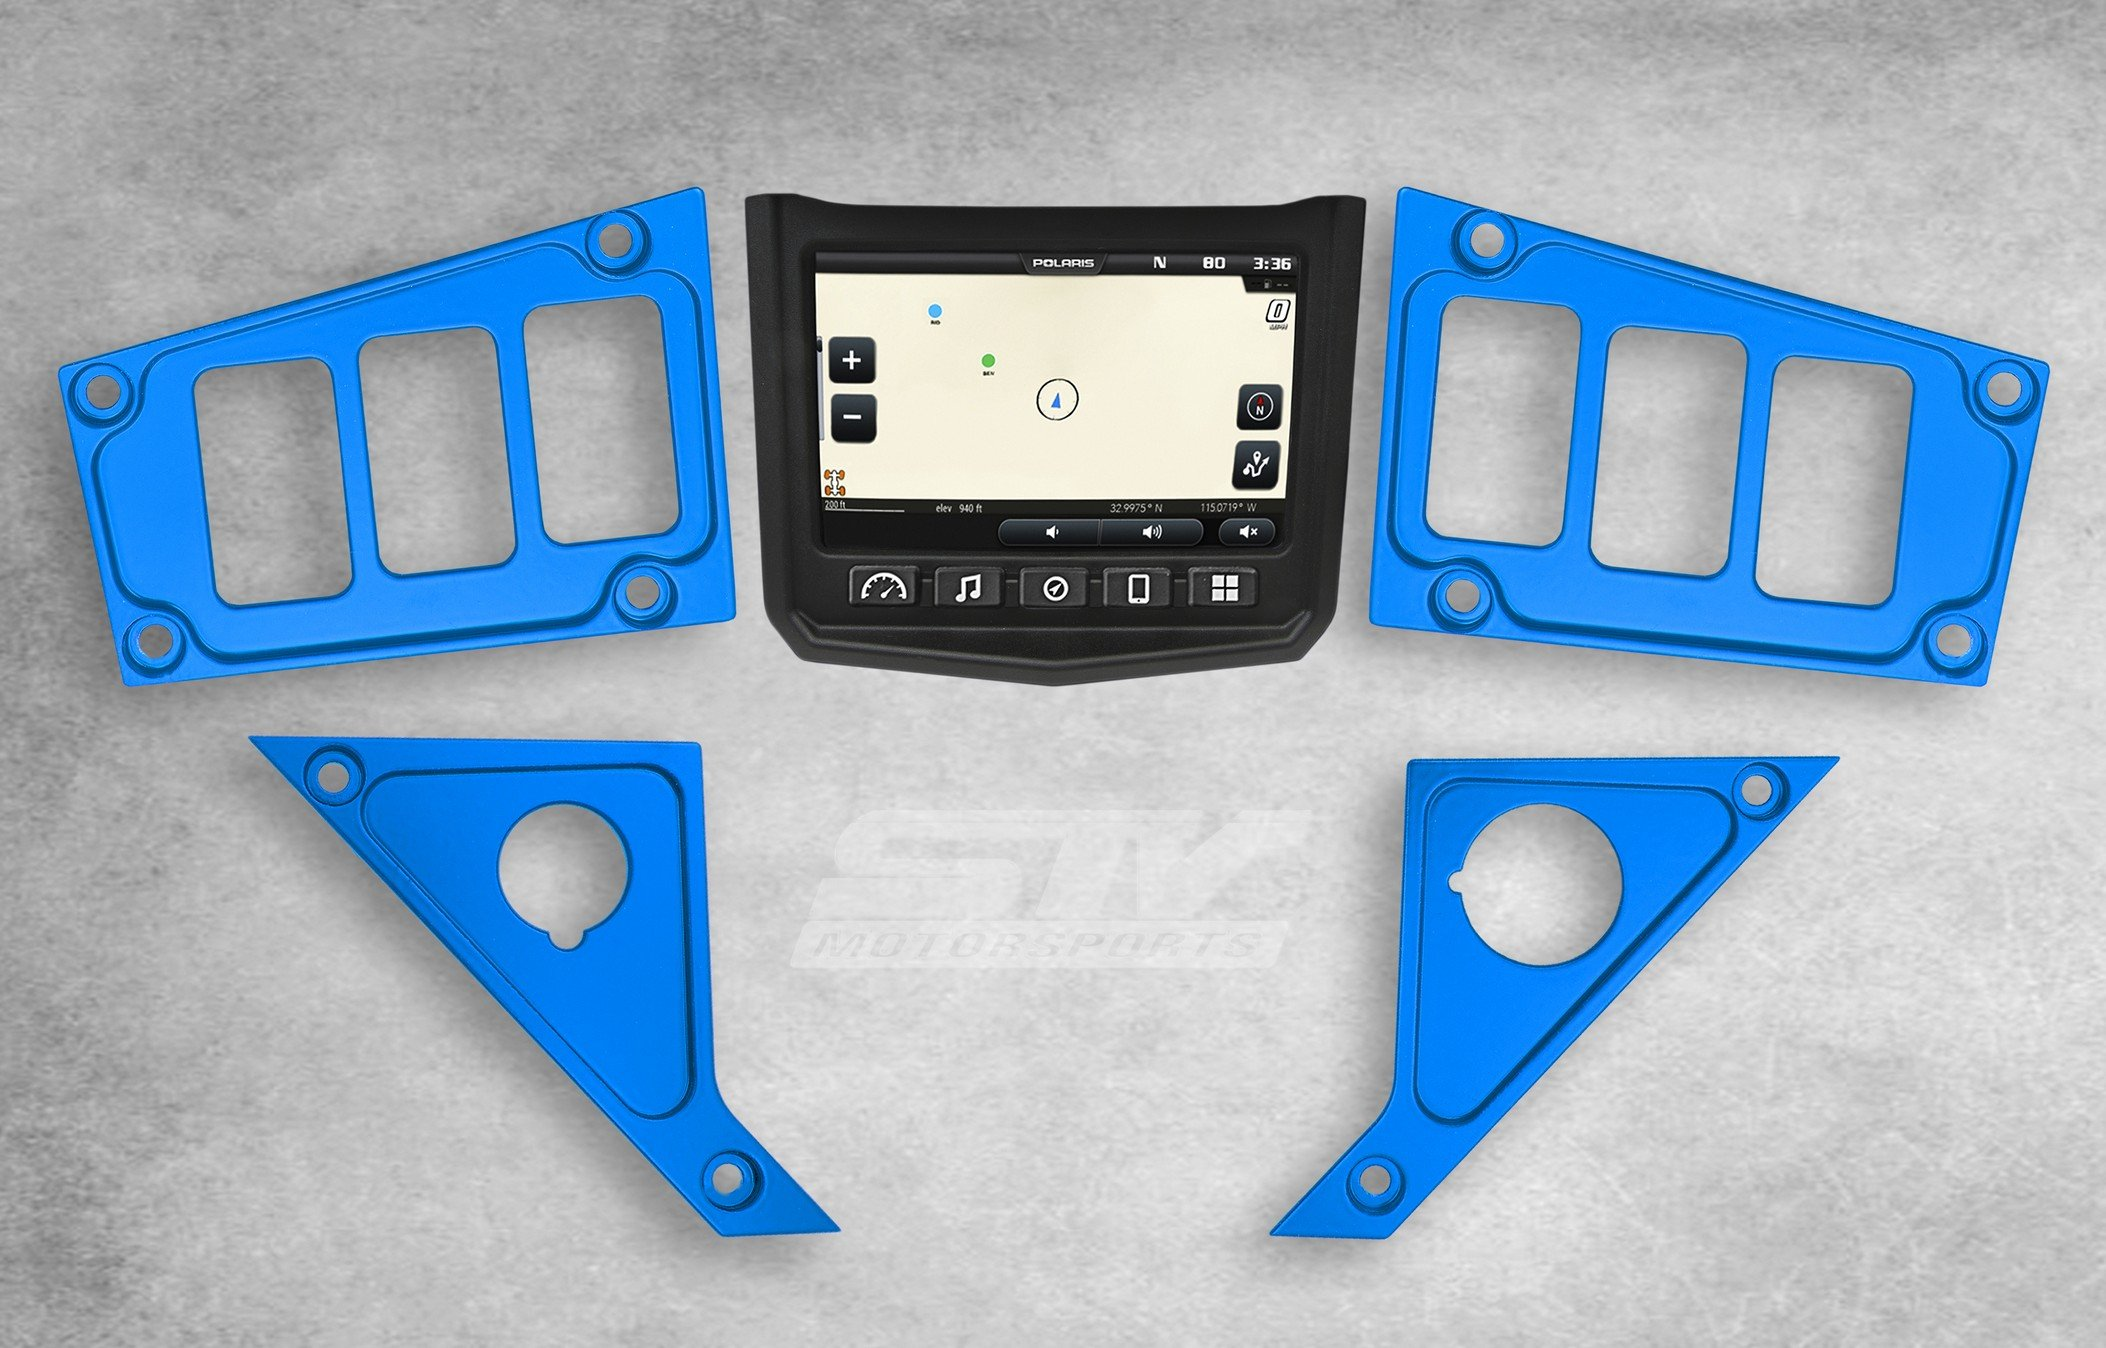 STV Motorsports Custom Blue Aluminum Dash Panel for 2017 POLARIS RZR XP 1000 RIDE COMMAND EDITION with 6 switch openings – MADE 100% in USA